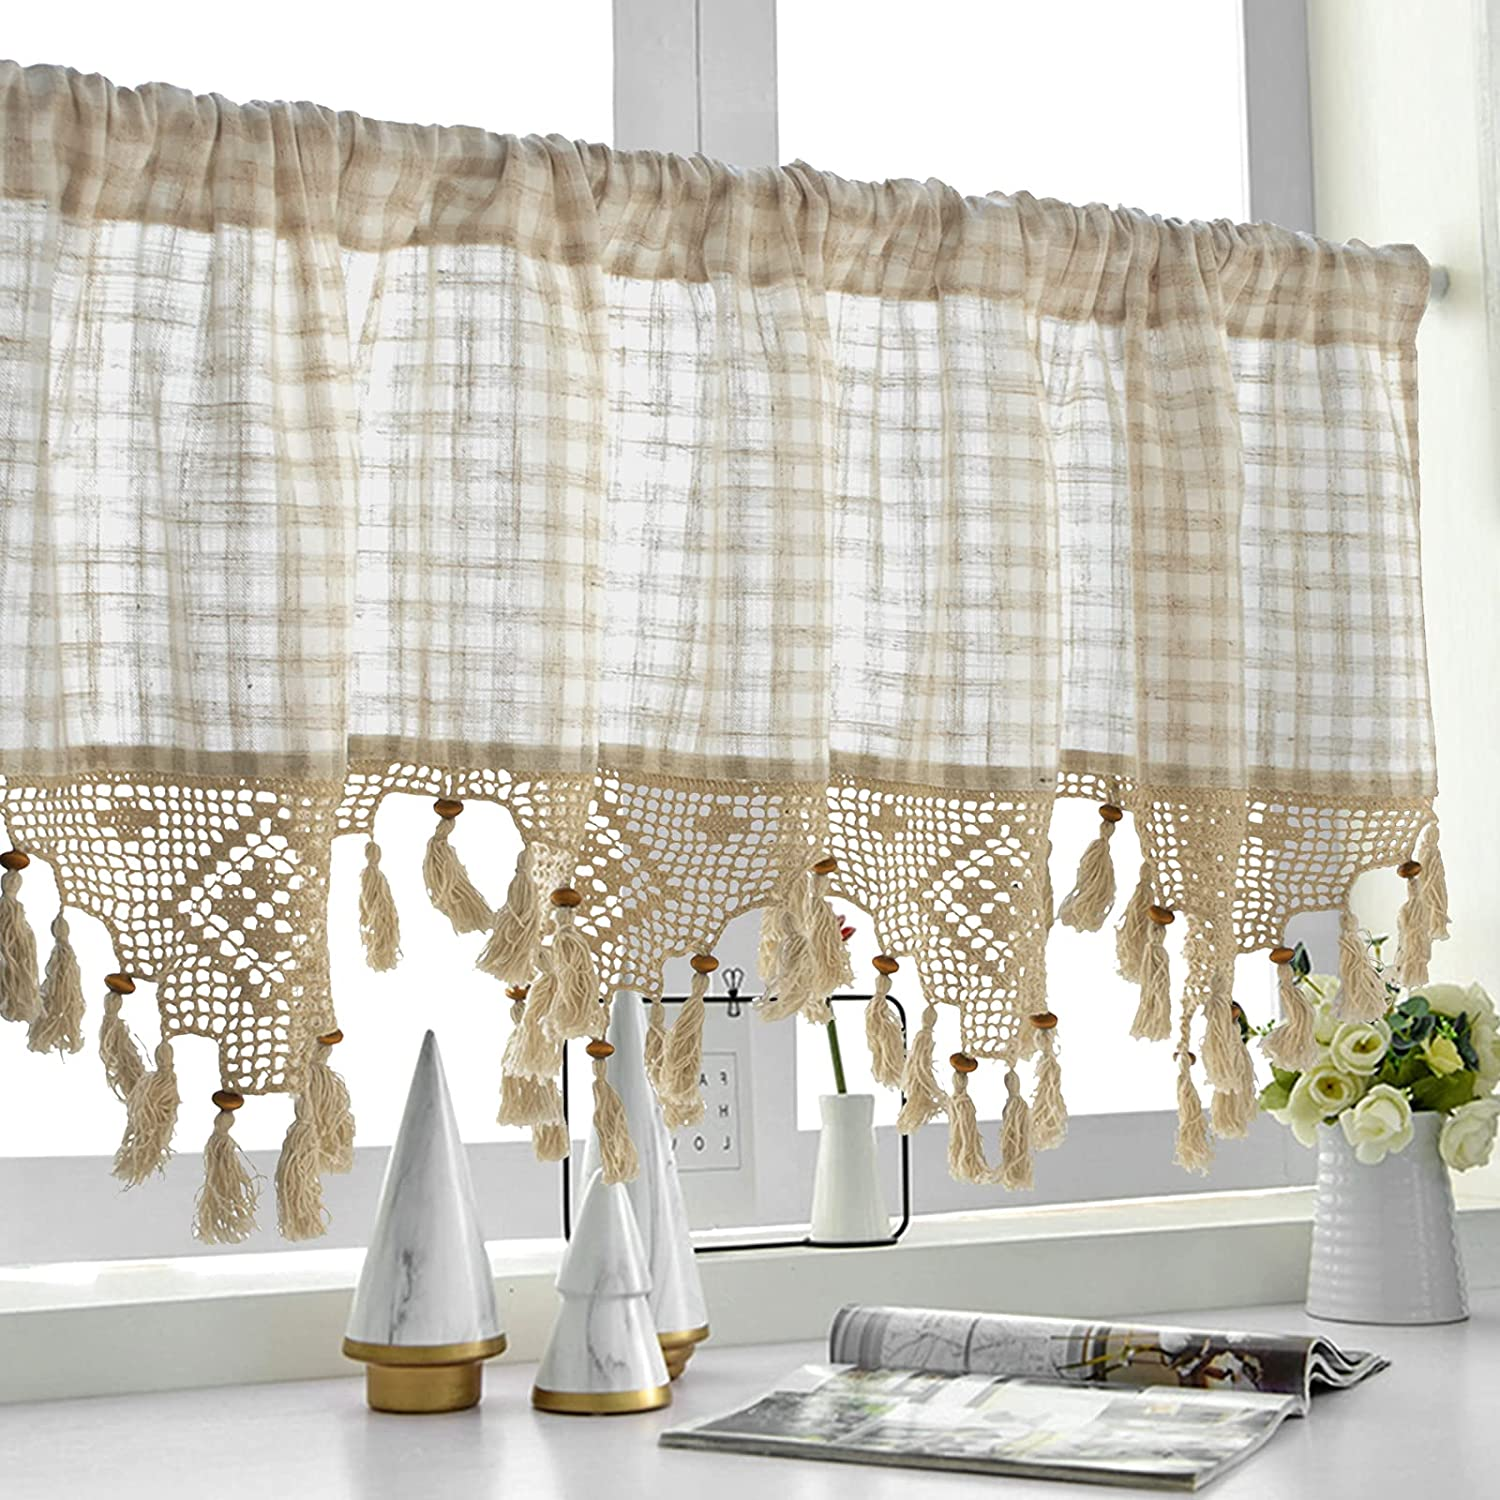 40% OFF Cheap Sale Indianapolis Mall Crochet Valance Handmade Lattice Cafe Tassel with Curtain Countr